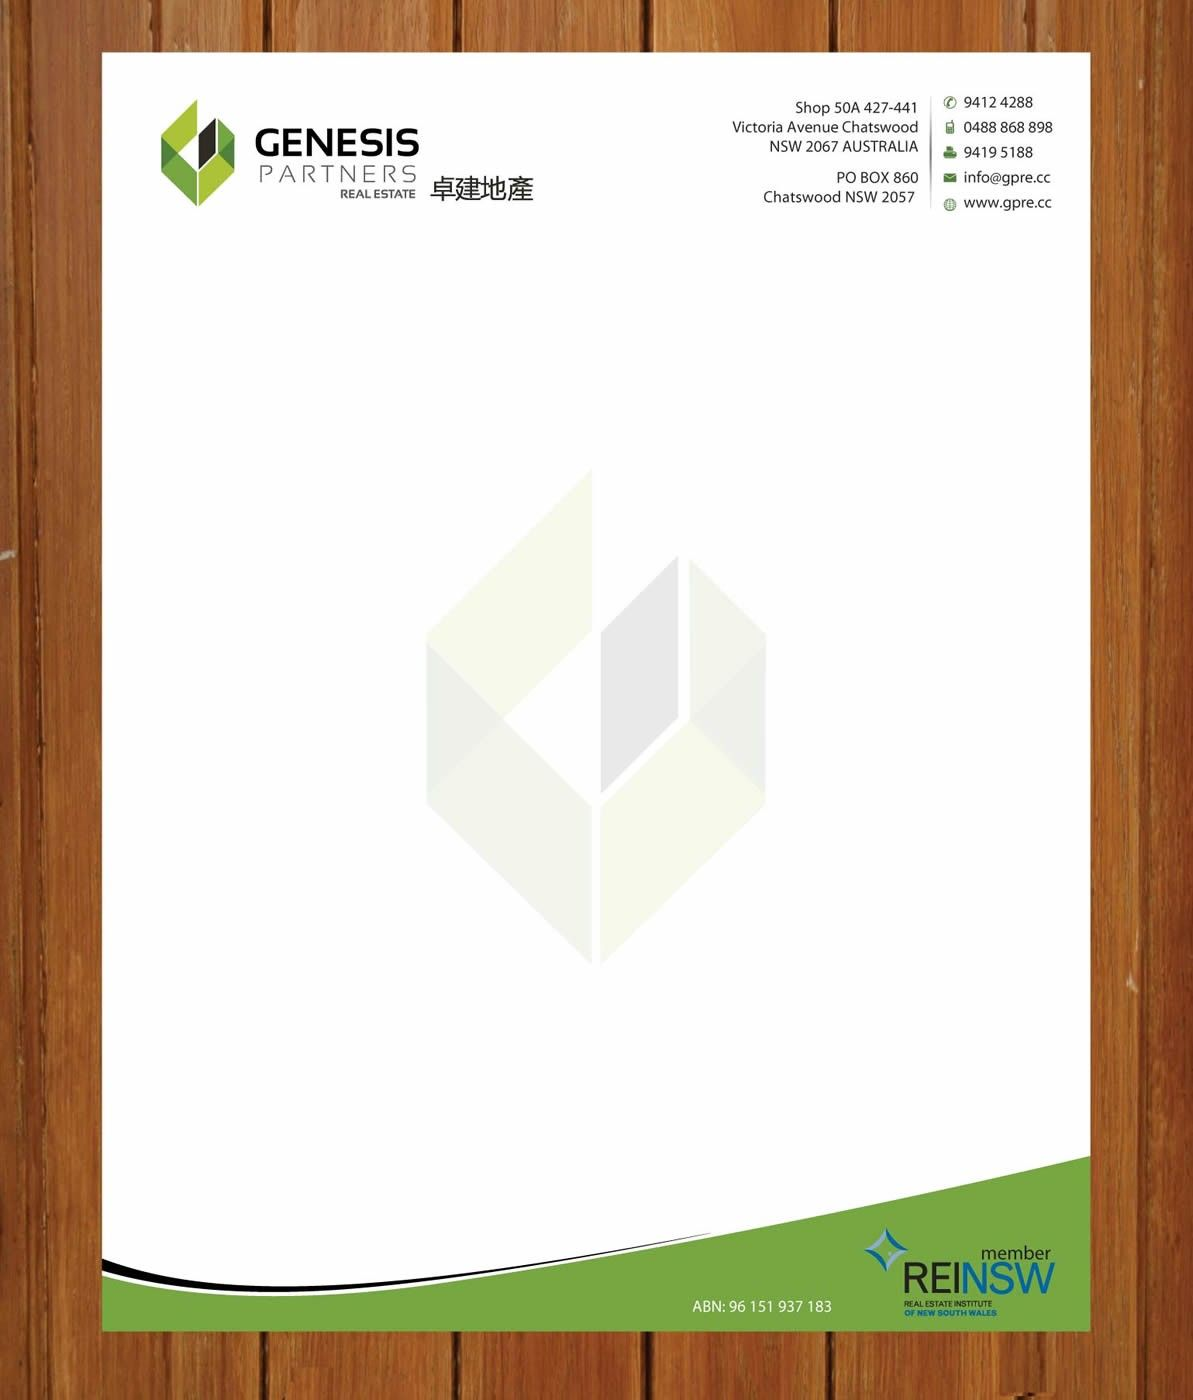 Business letterhead designs custom company letterheads usa business letterhead designs custom company letterheads usa spiritdancerdesigns Image collections